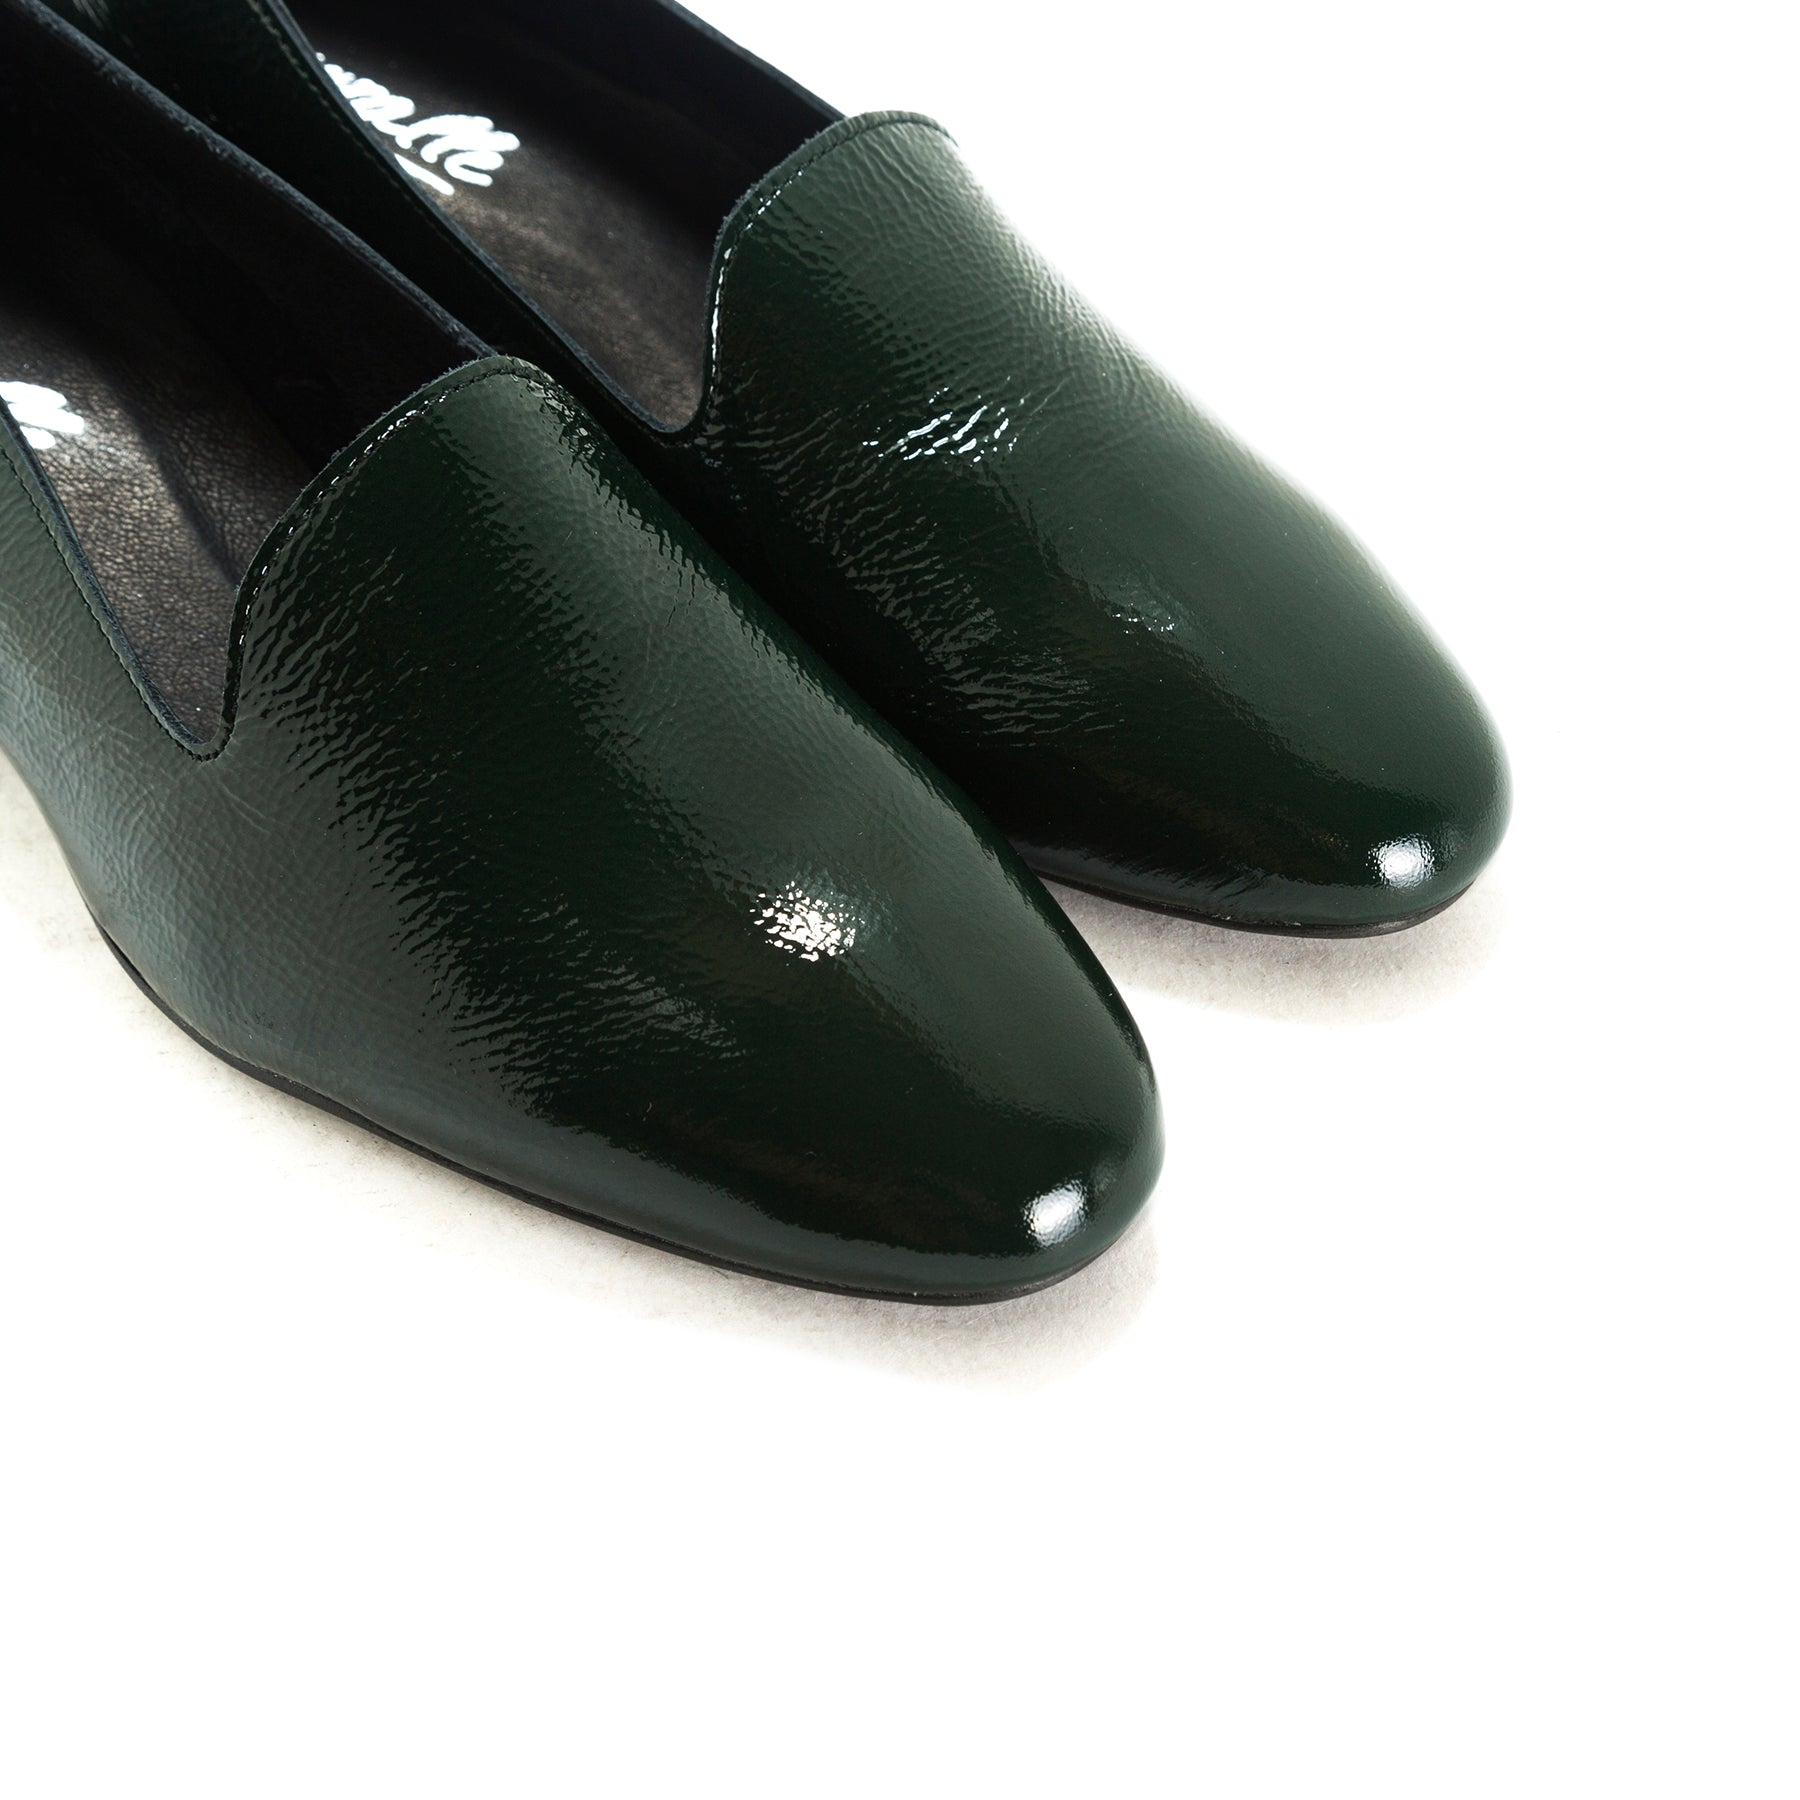 Dawn Green Naplack Shoes